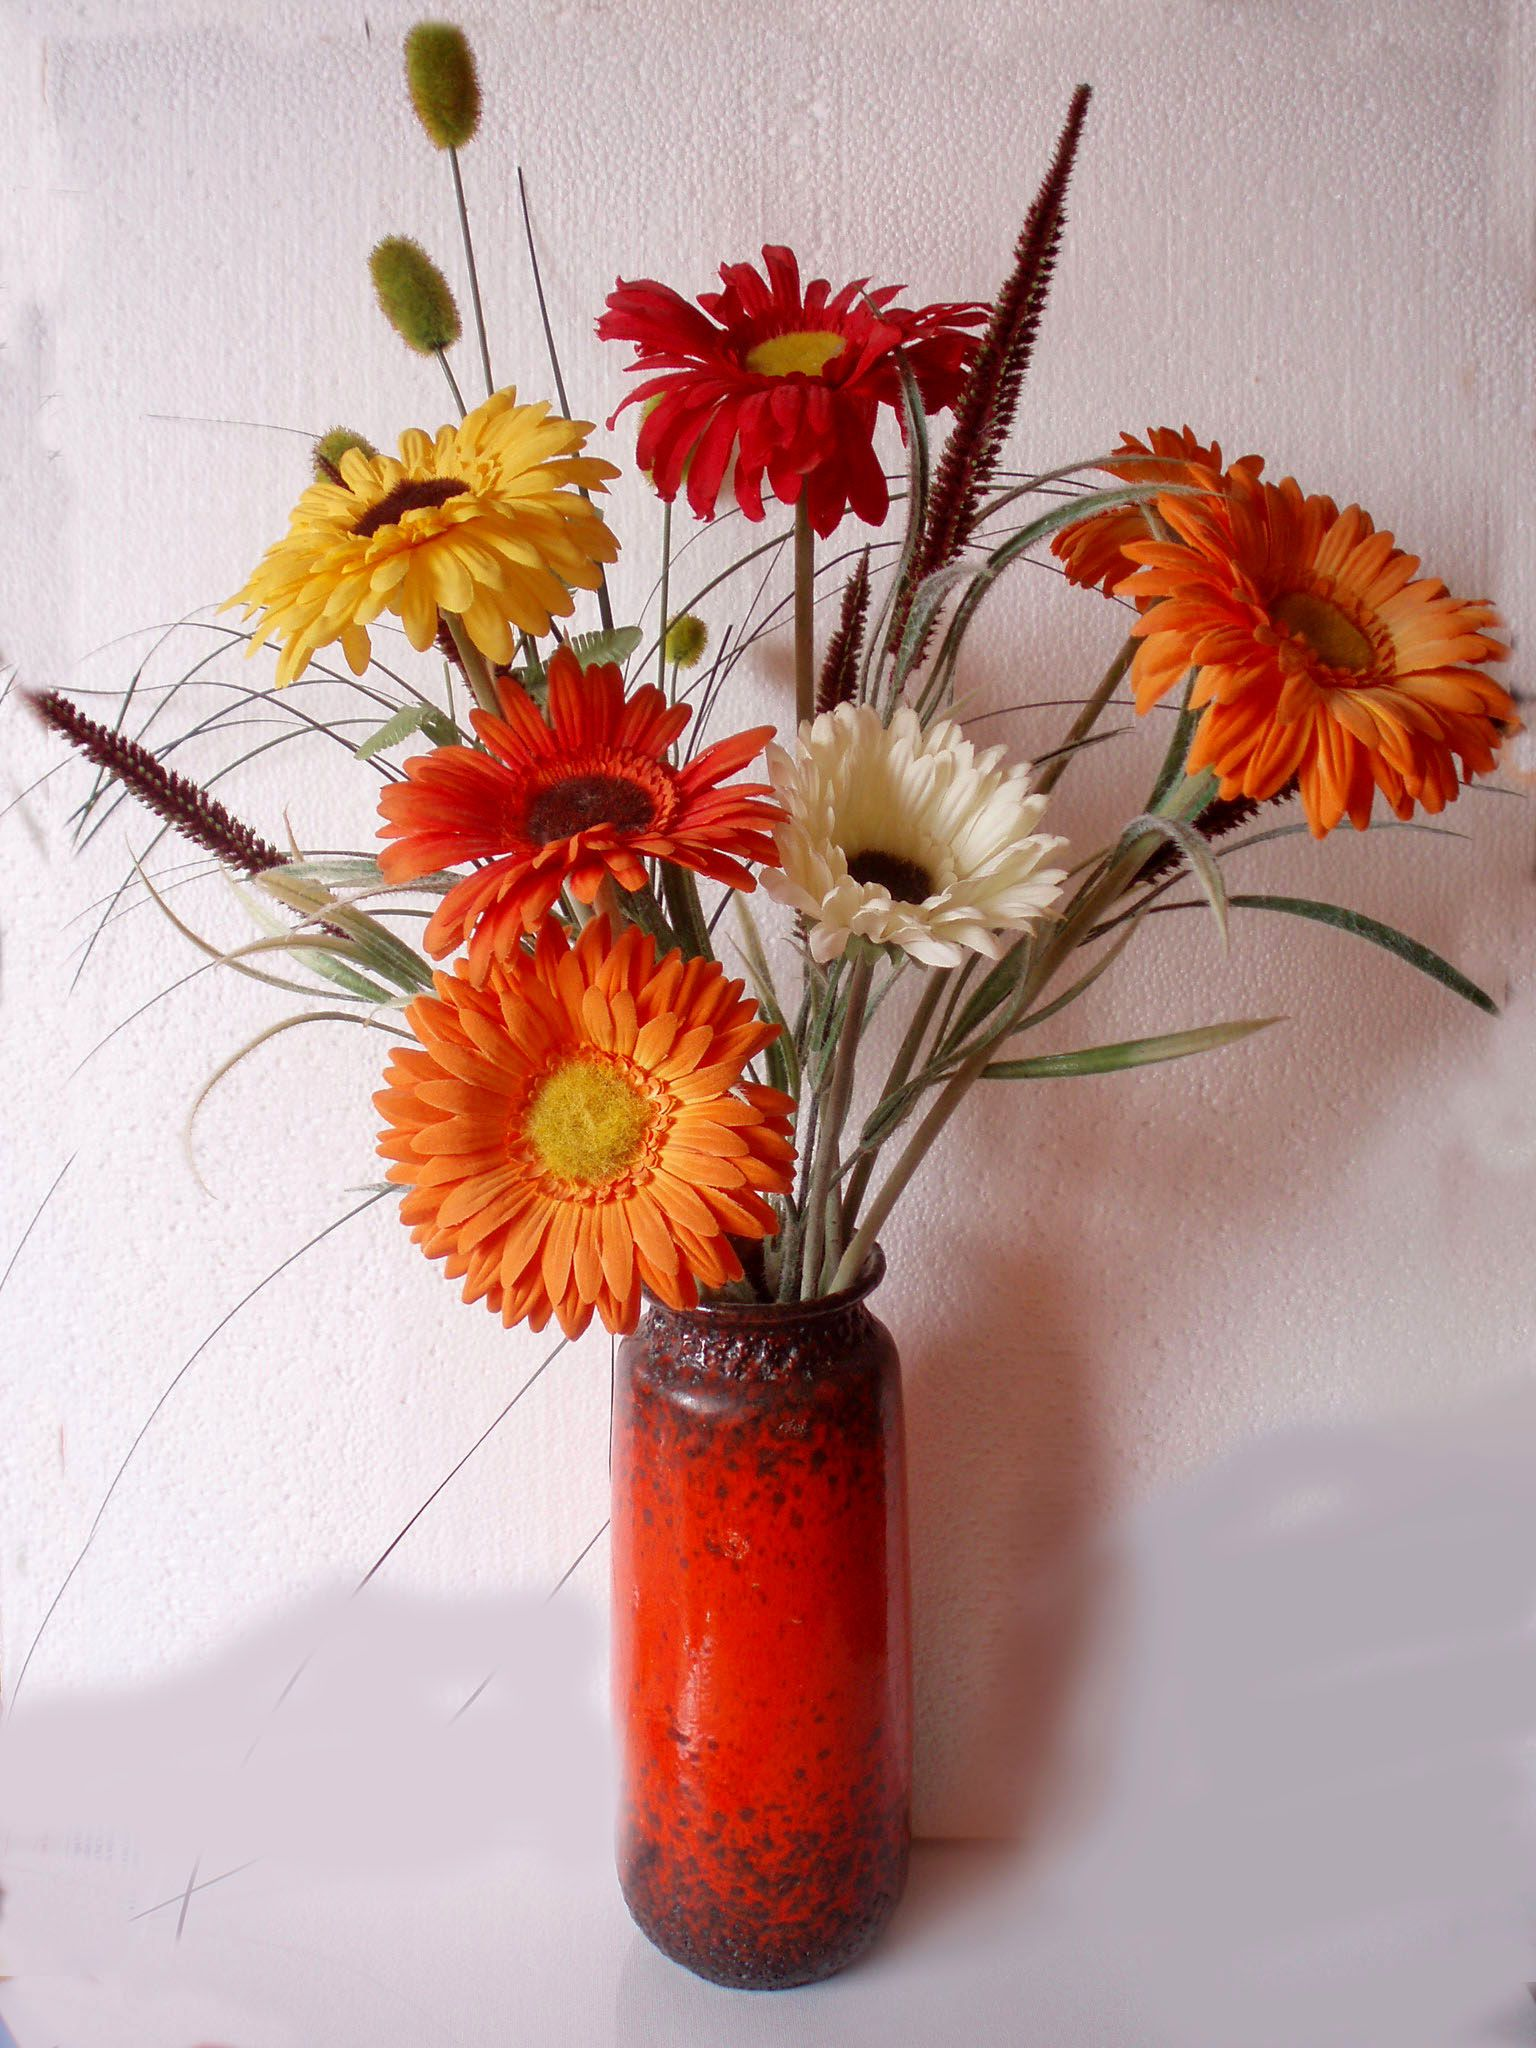 Picture Of Flower Vase Visit Website For More Images